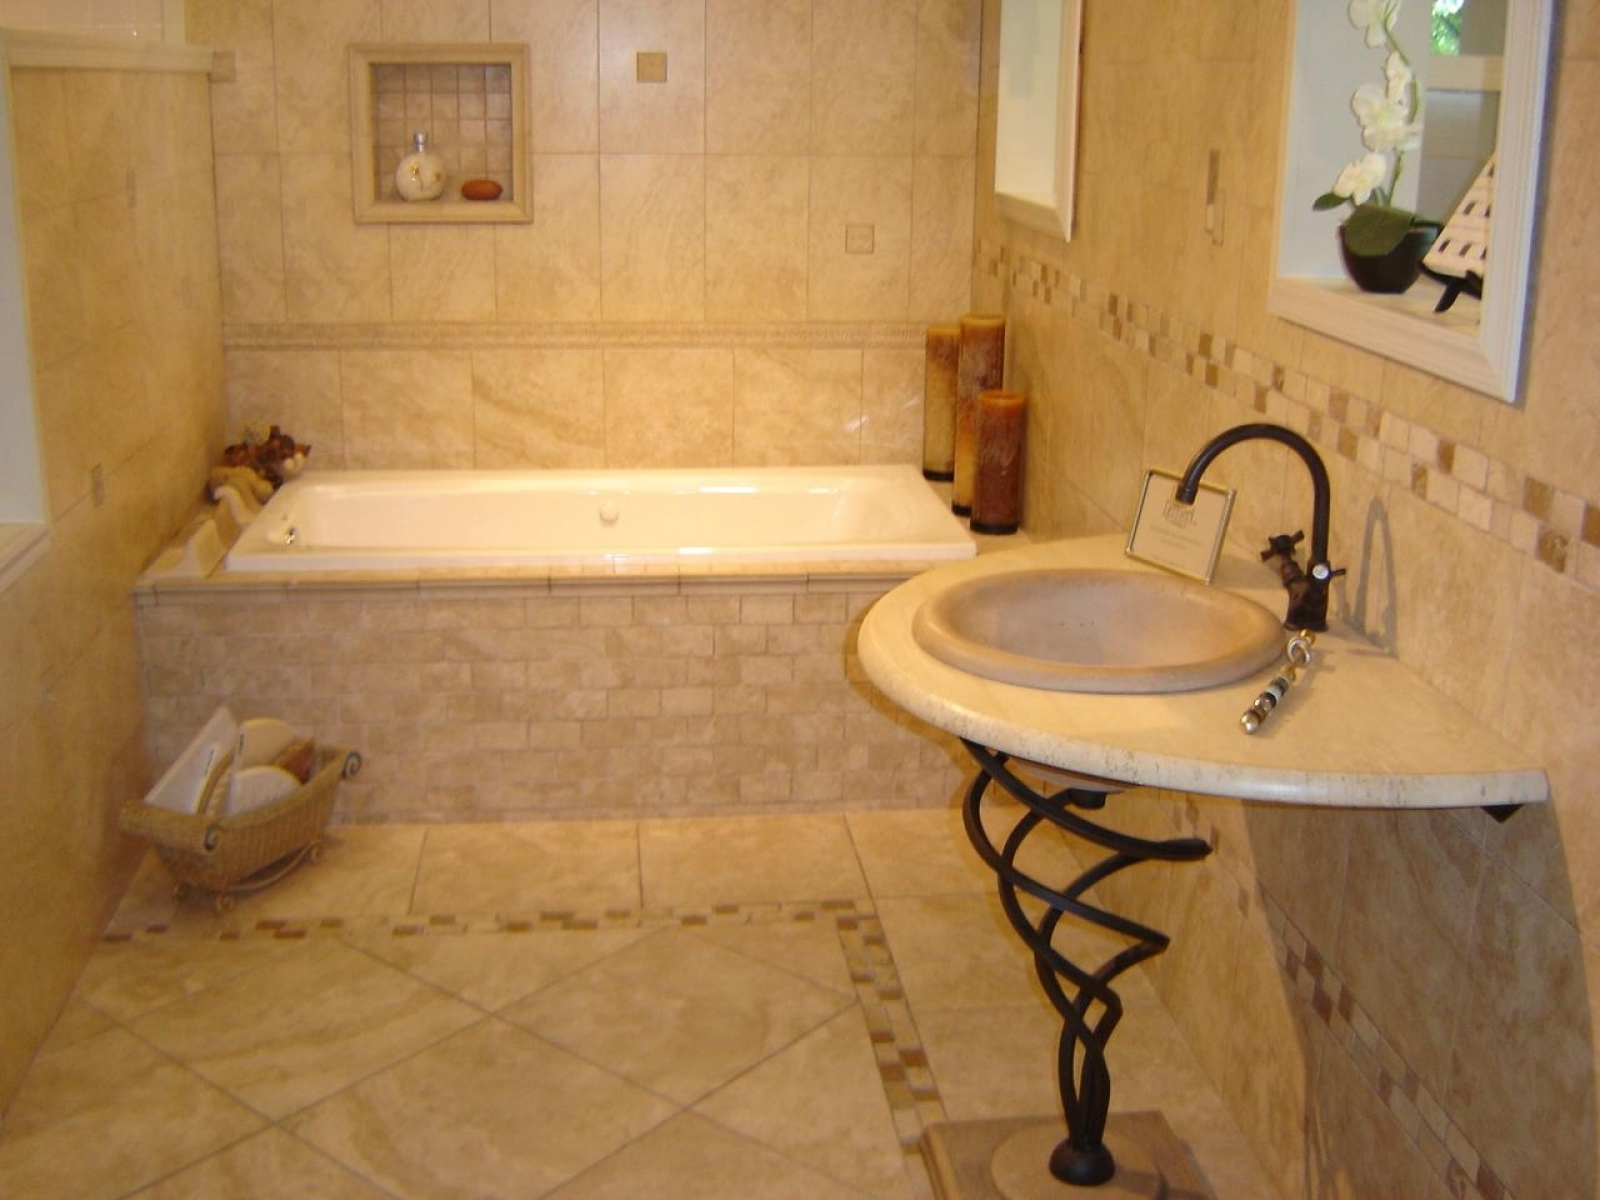 wall-bathroom-remodel-ideas-for-making-homes-beautiful-remarkably-bathroom-bathroom-remodeling-ideas